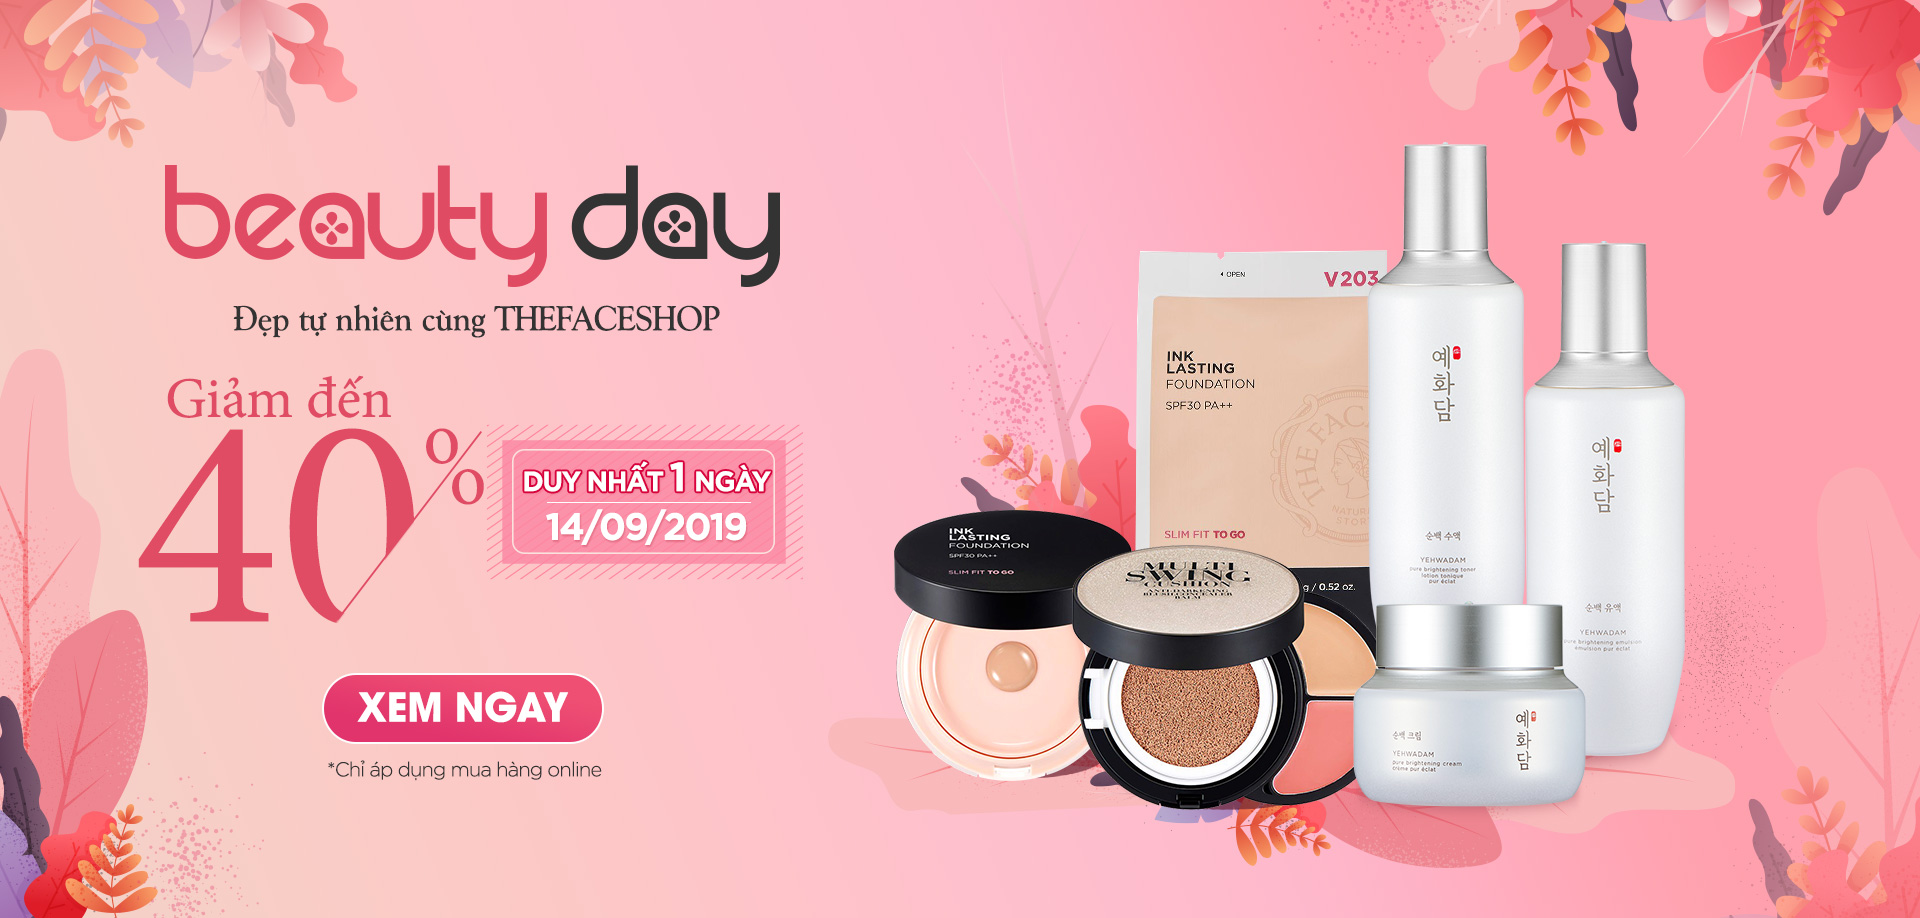 THE FACESHOP - BEAUTY DAY 14.09.2019